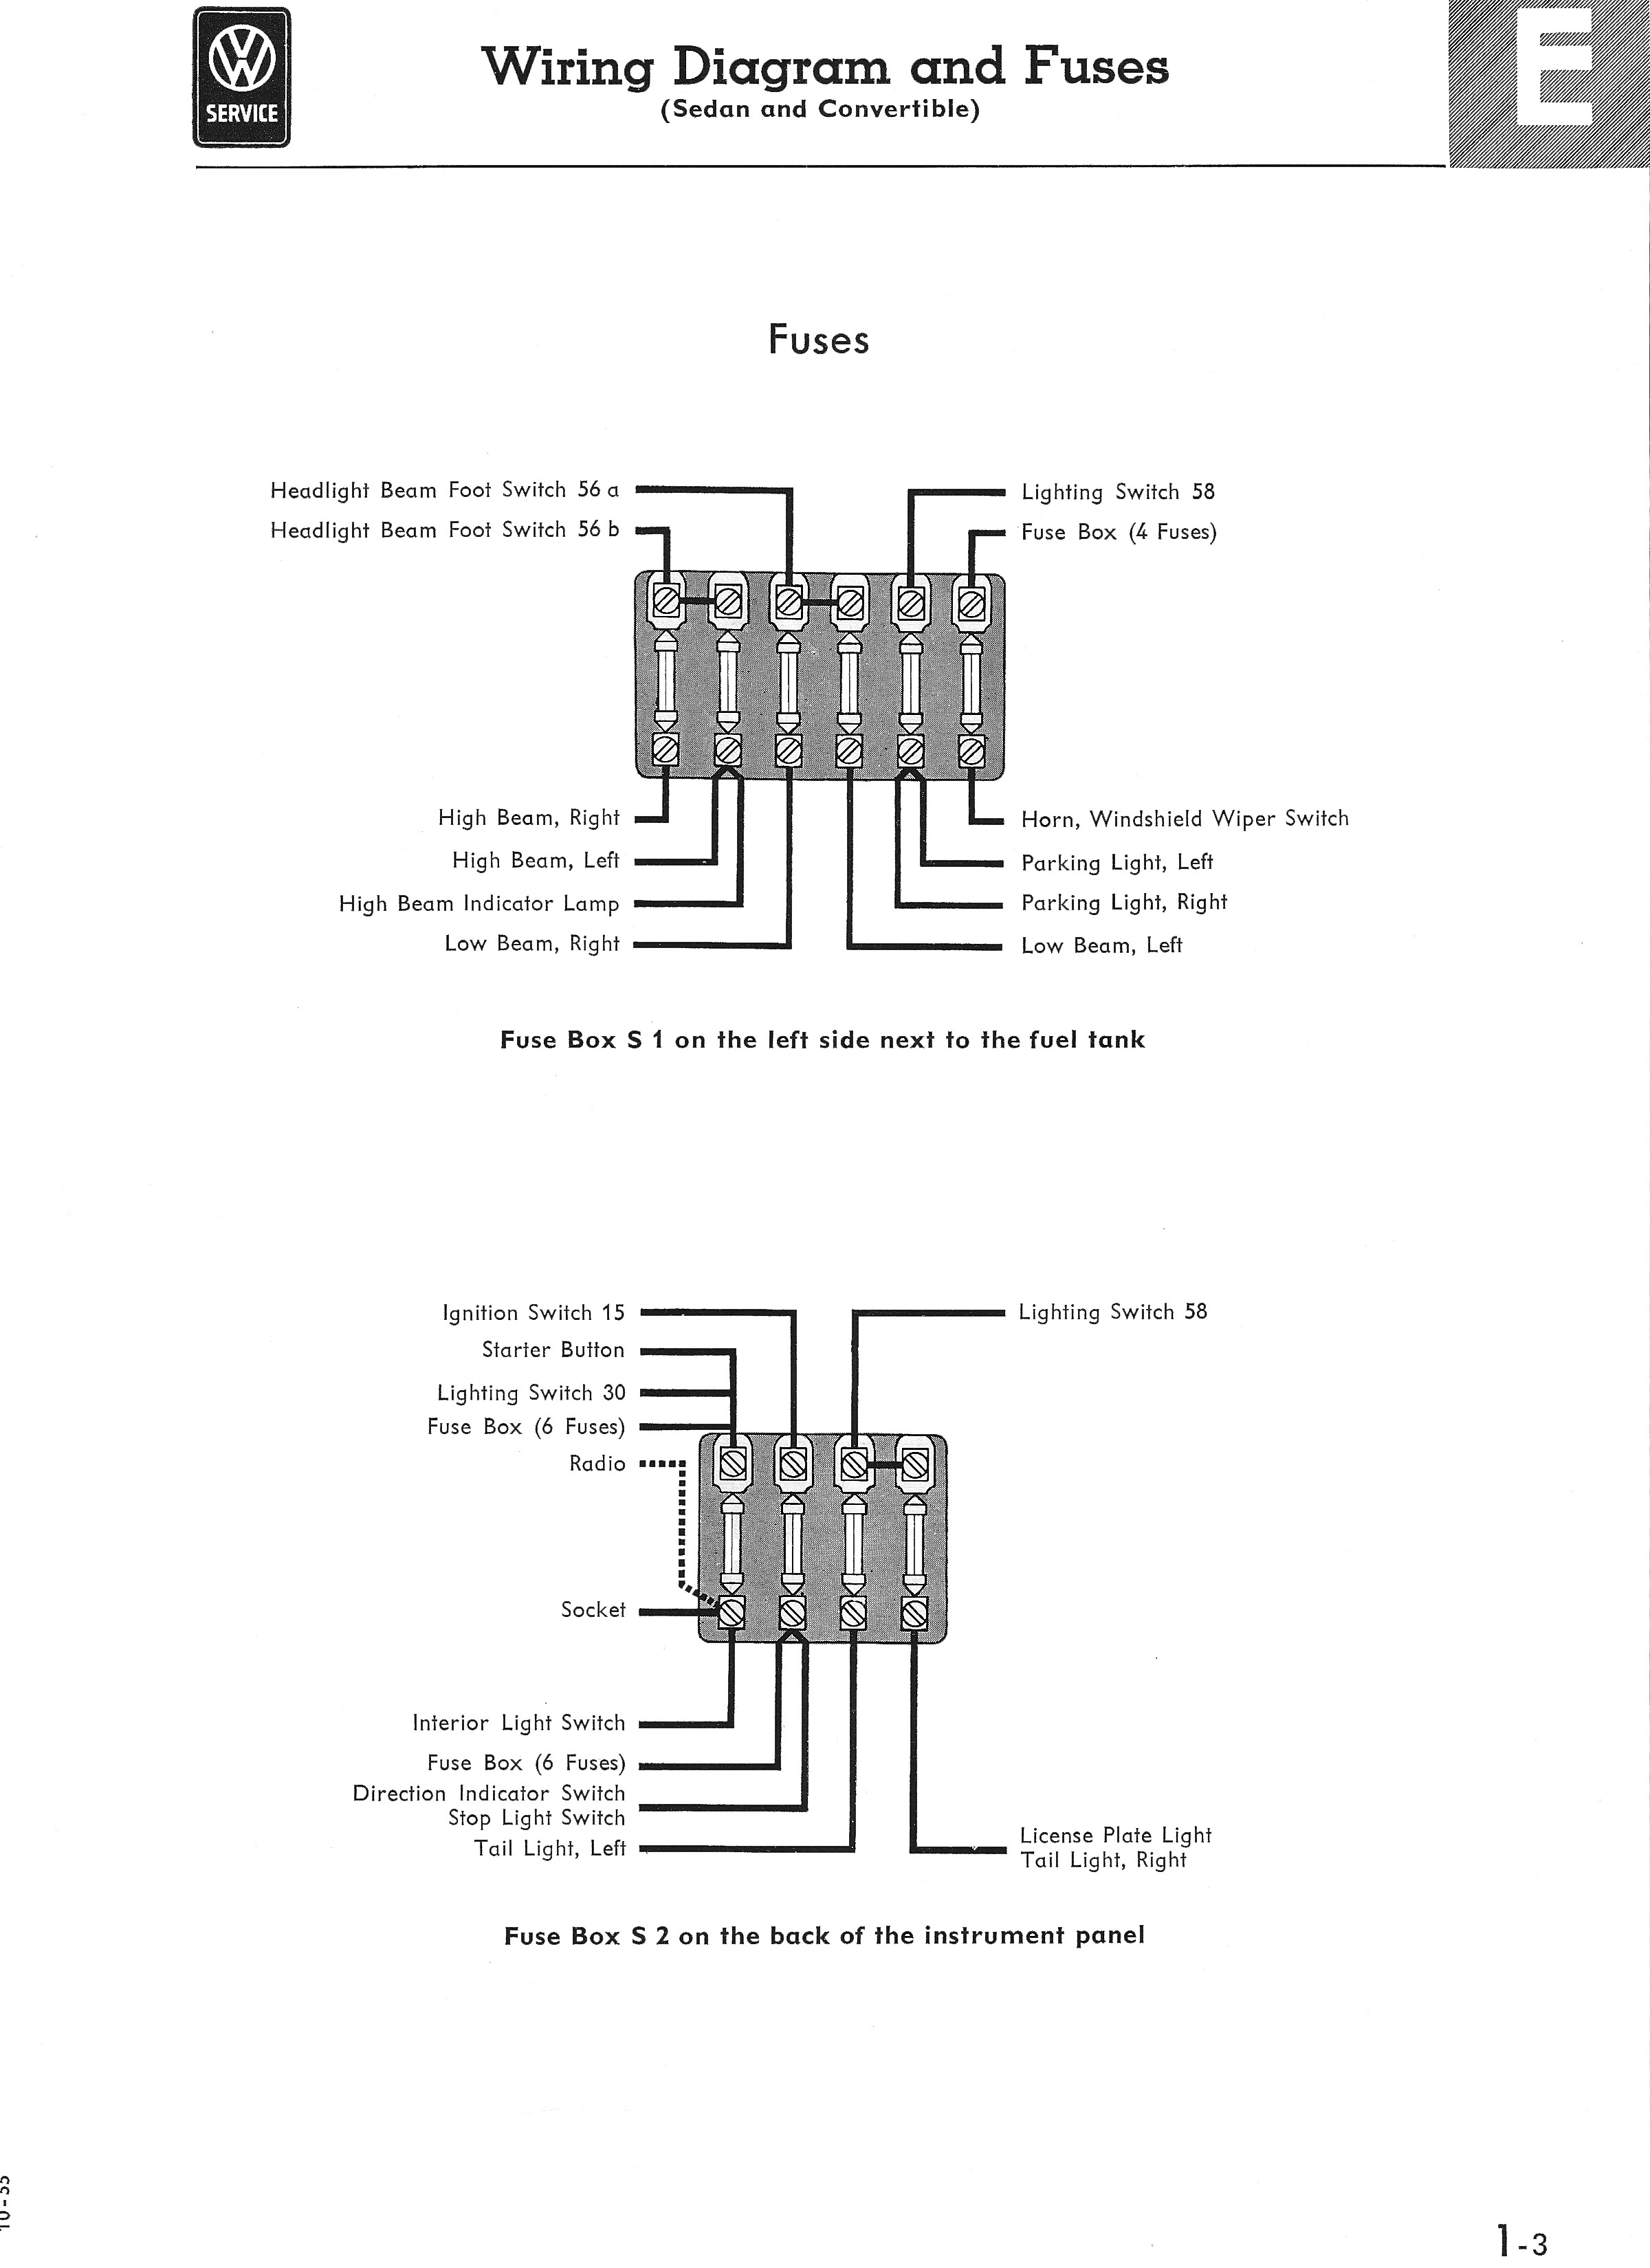 Ford Fuse Box Diagram 2002 F 350 Wiring Library 03 F150 Thesamba Com Type 1 Diagrams 2006 Sierra Panel For